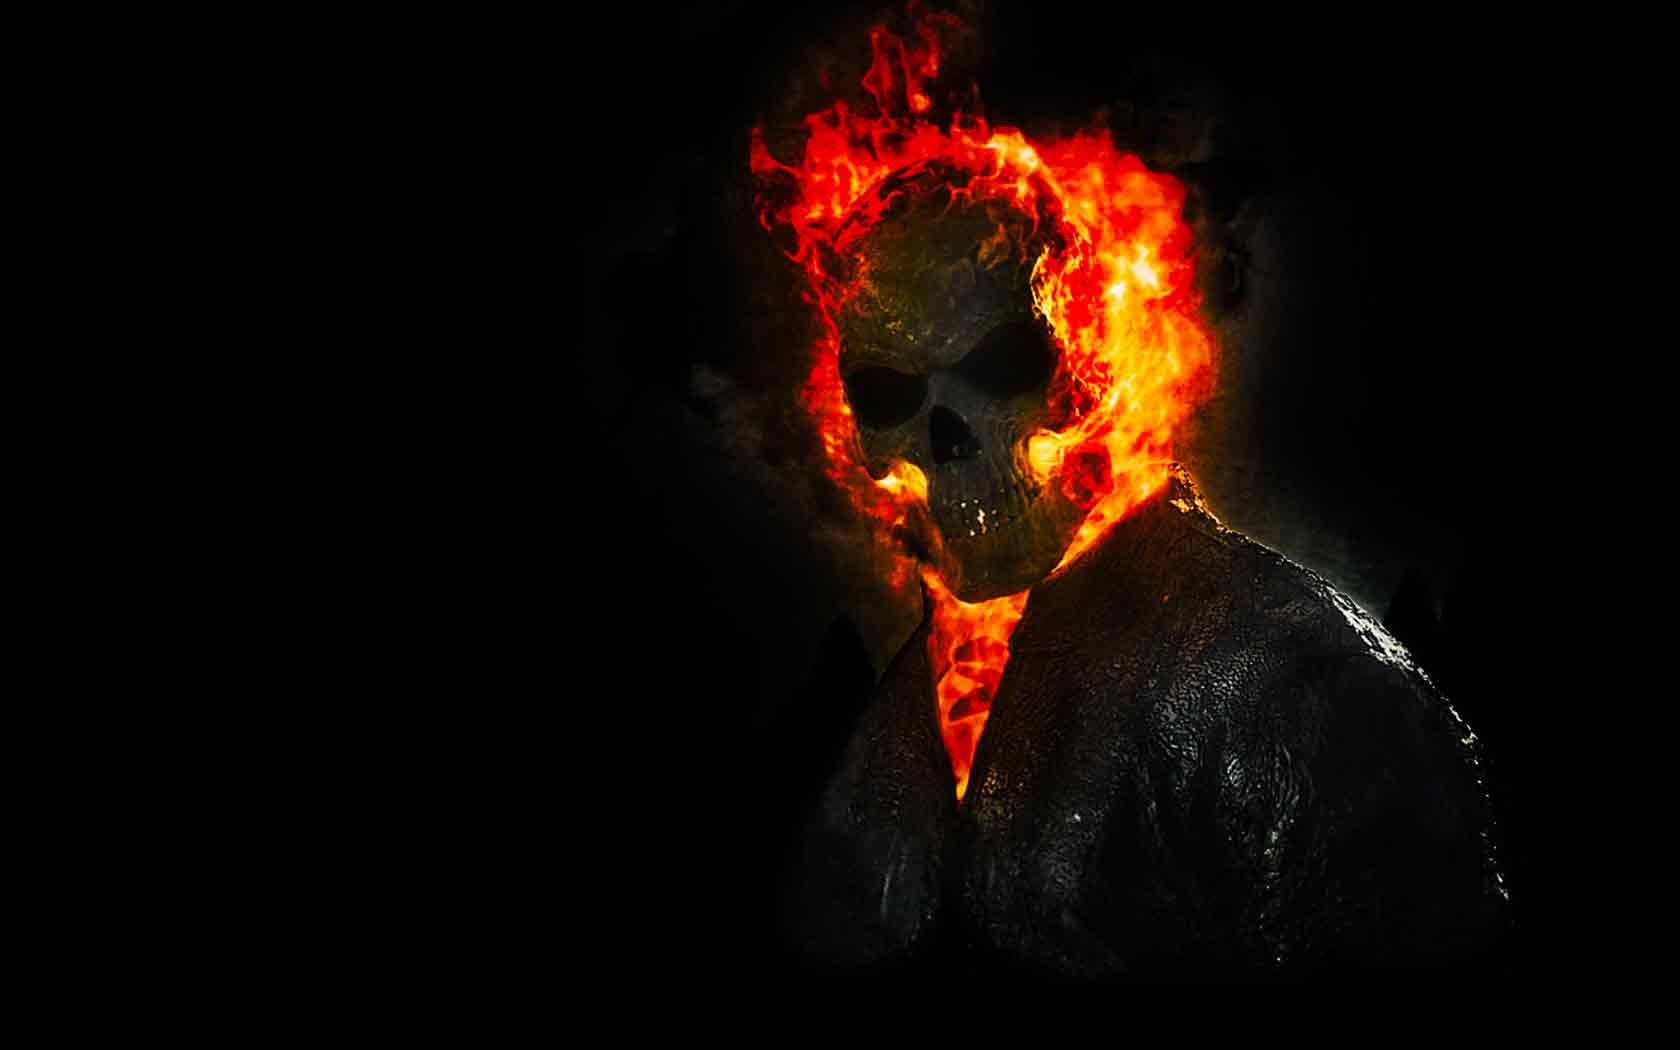 Ghost Rider Wallpapers HD - Wallpaper Cave